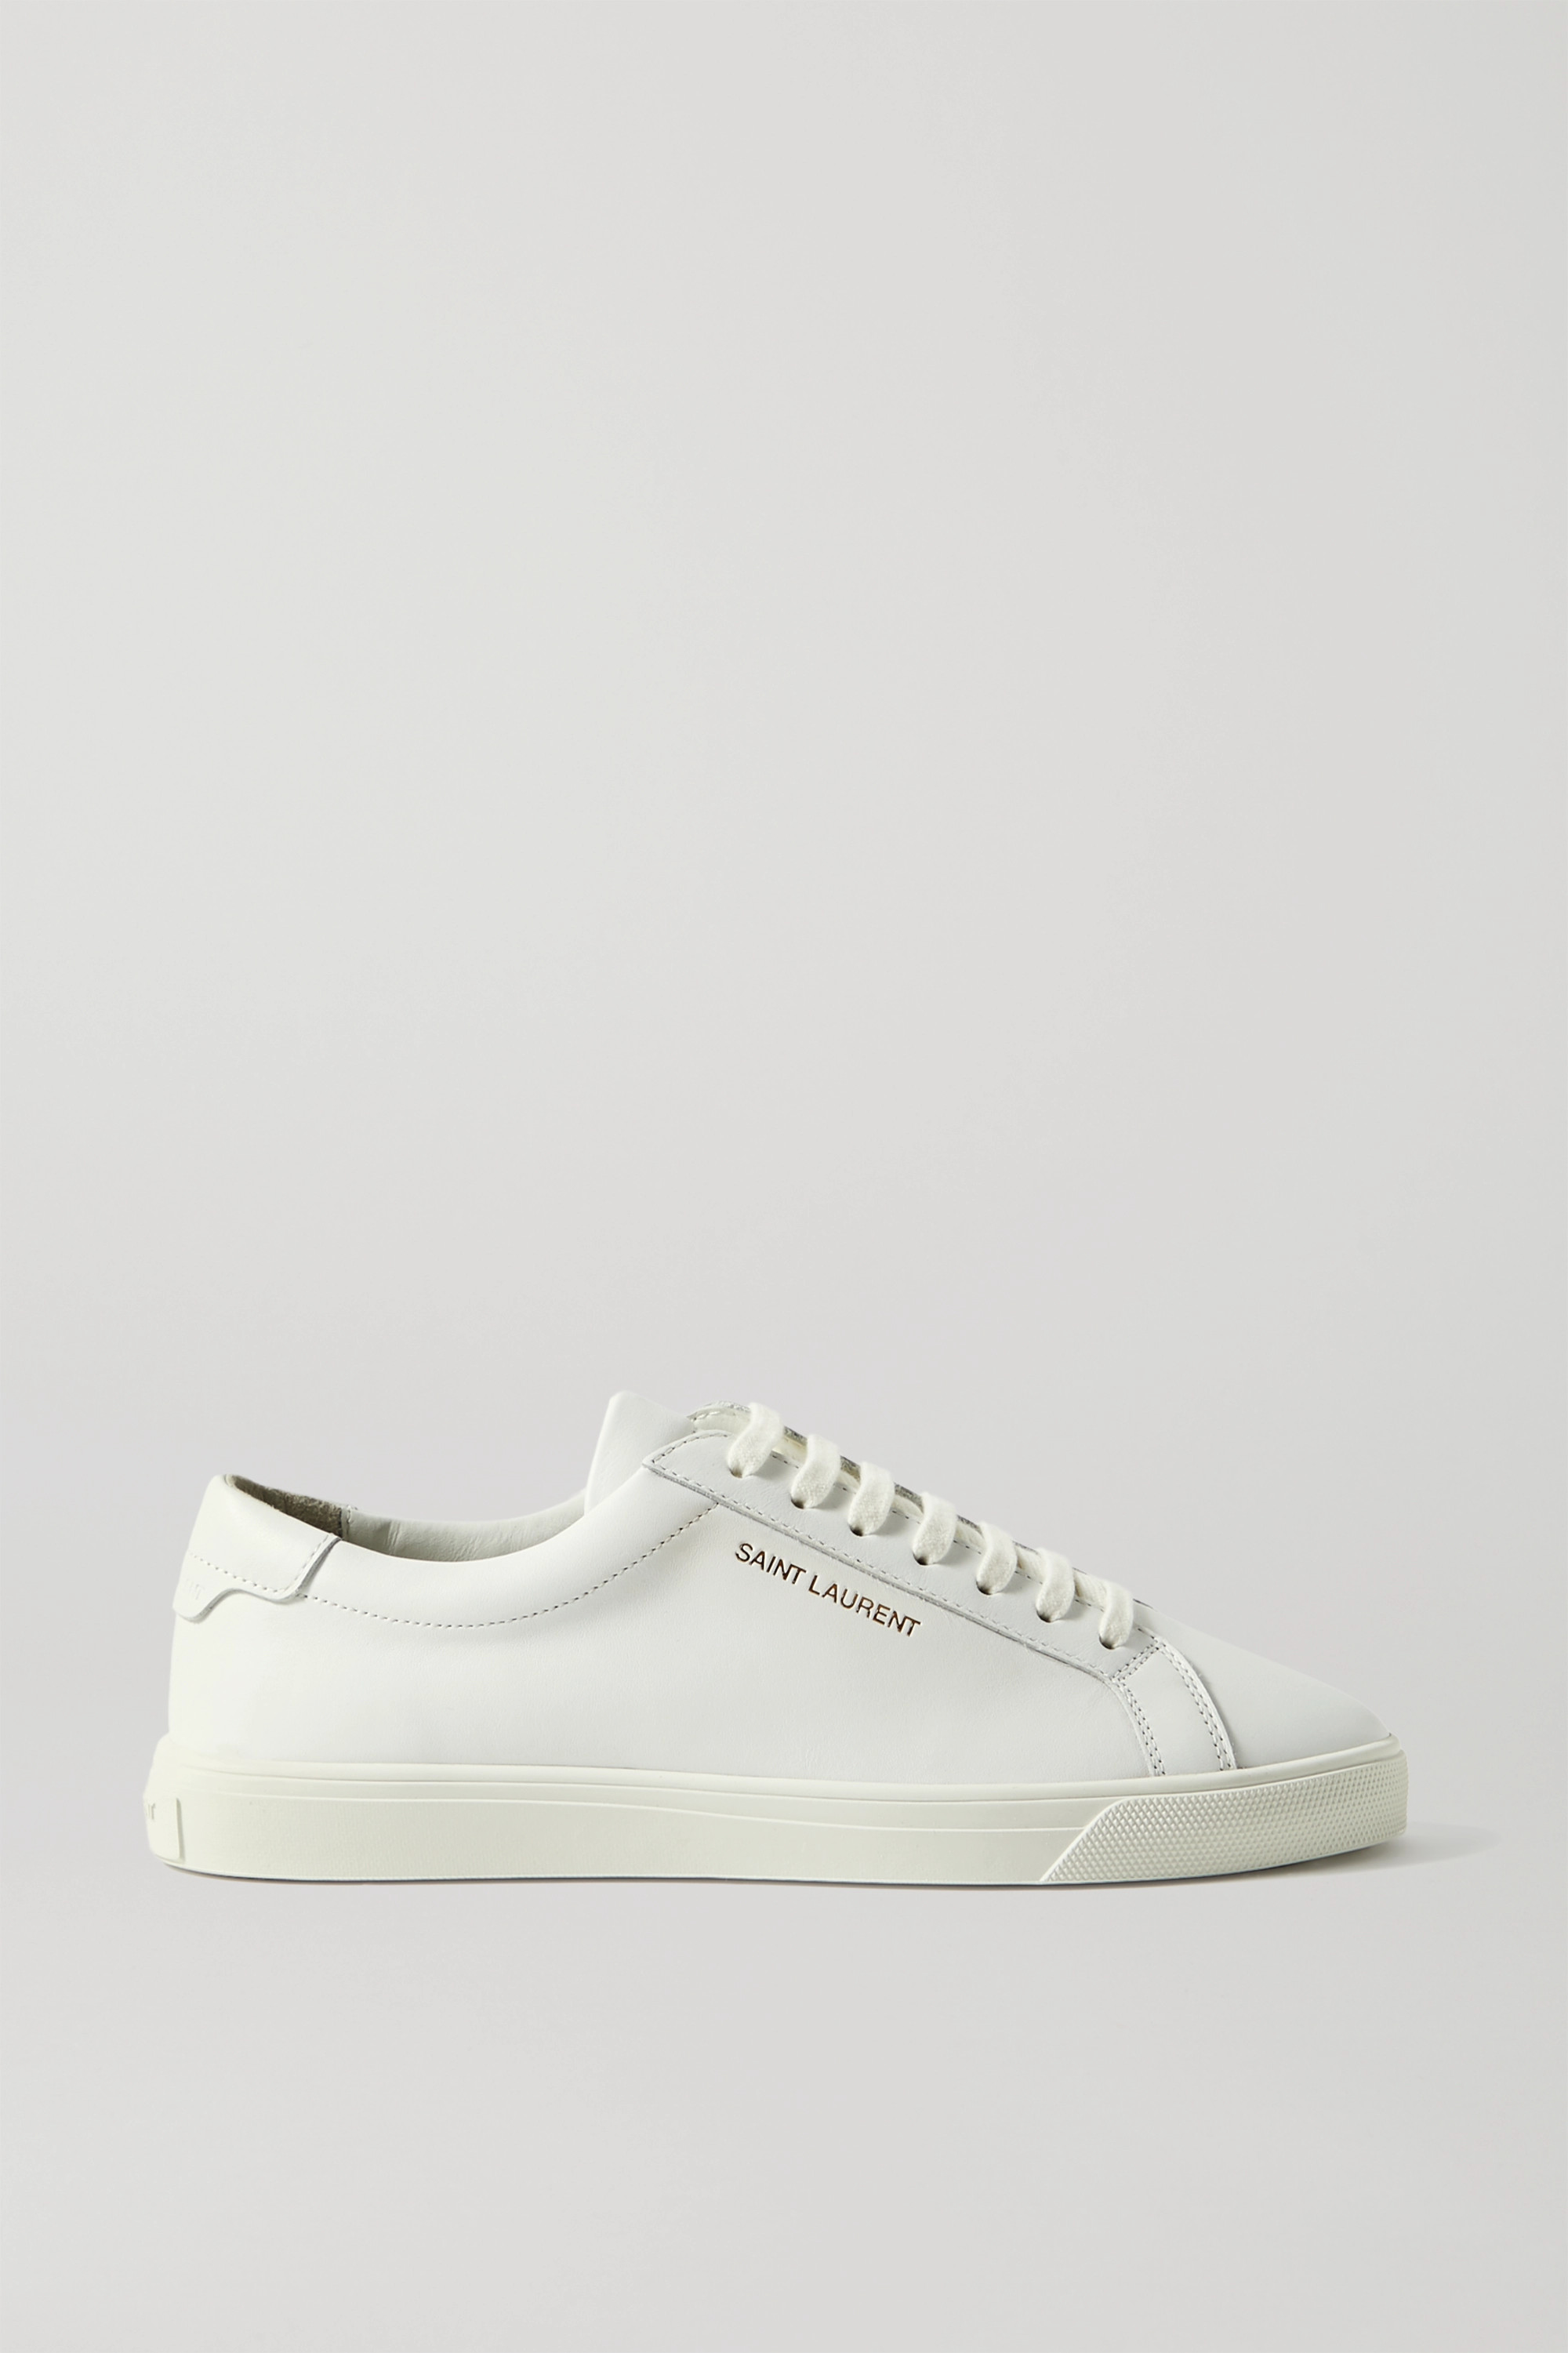 SAINT LAURENT Andy logo-print leather sneakers